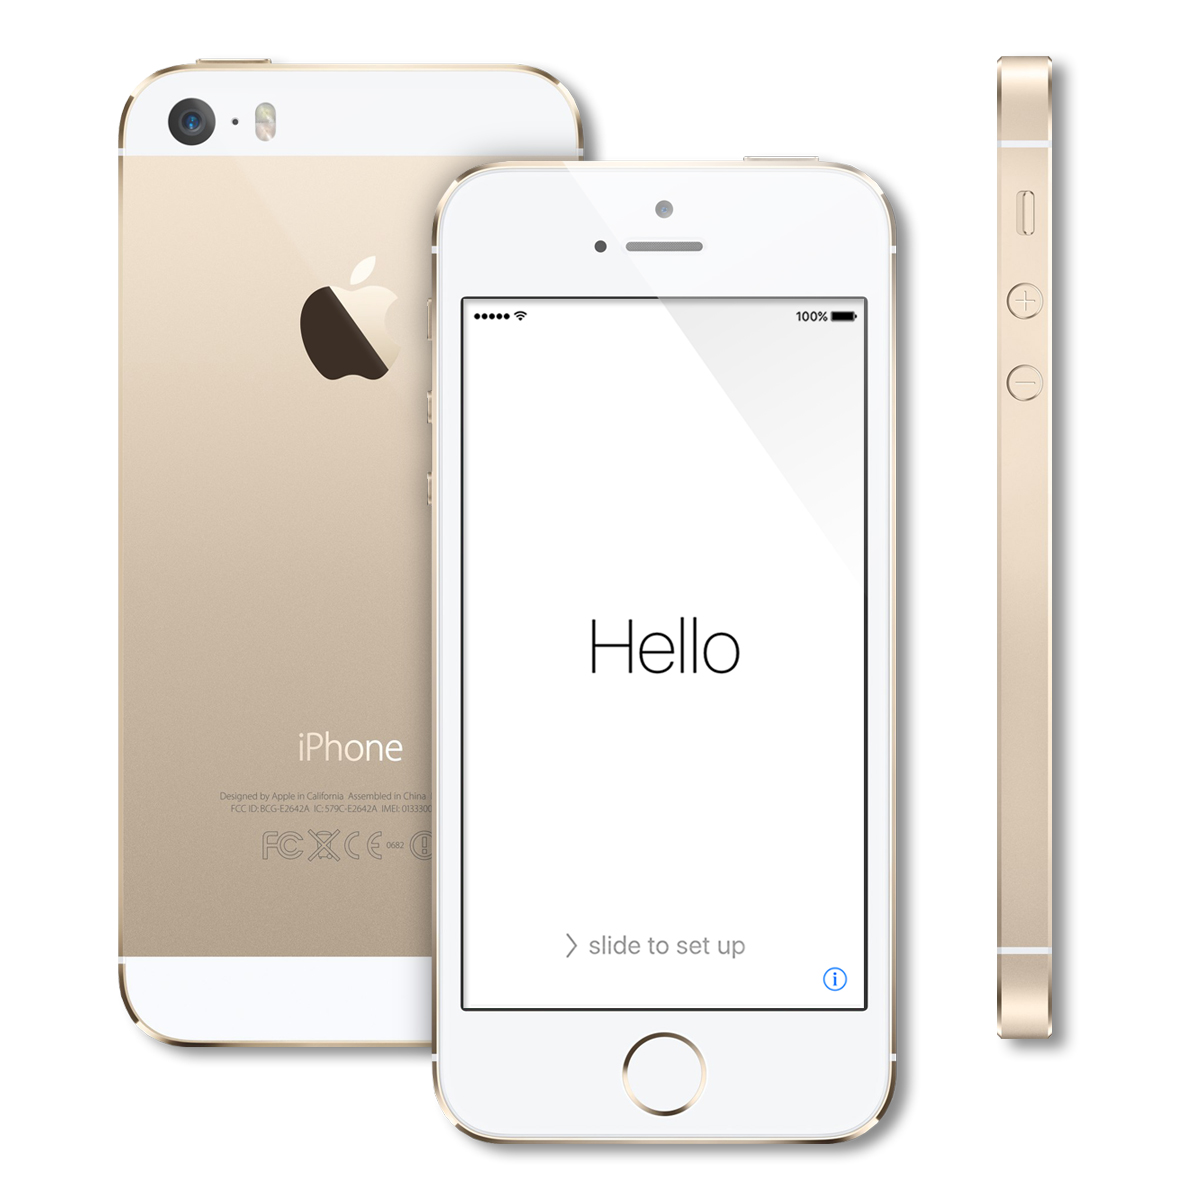 t mobile iphone 5s apple iphone 5s smartphone 32gb gsm unlocked a1533 at amp t t 16236